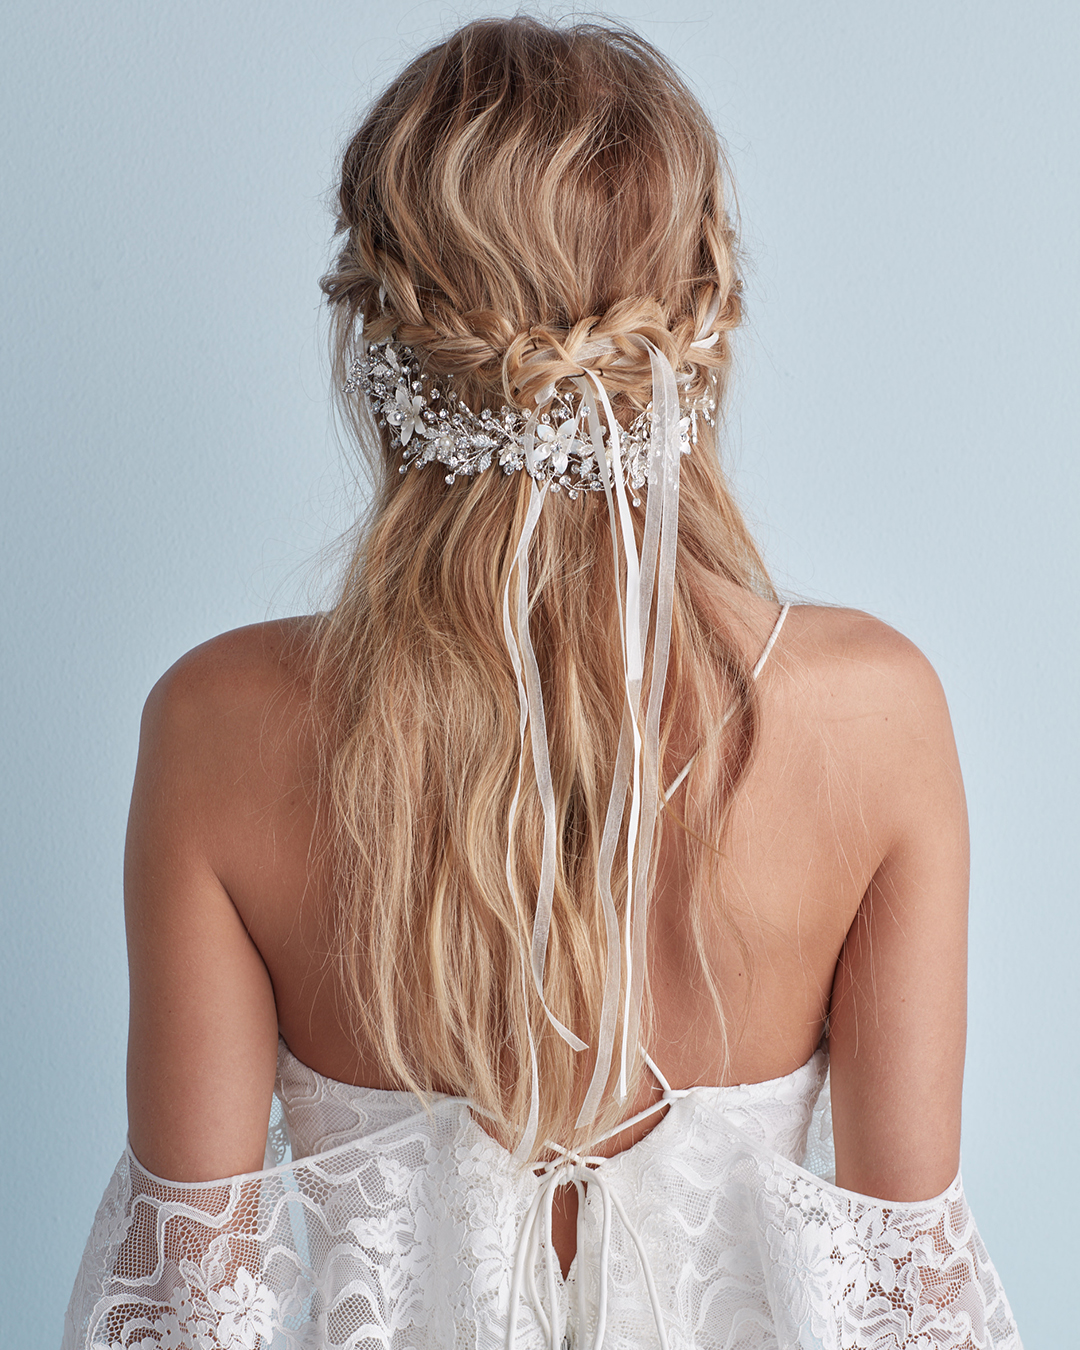 Wedding hairstyle with braid and crystal headband in half-up style